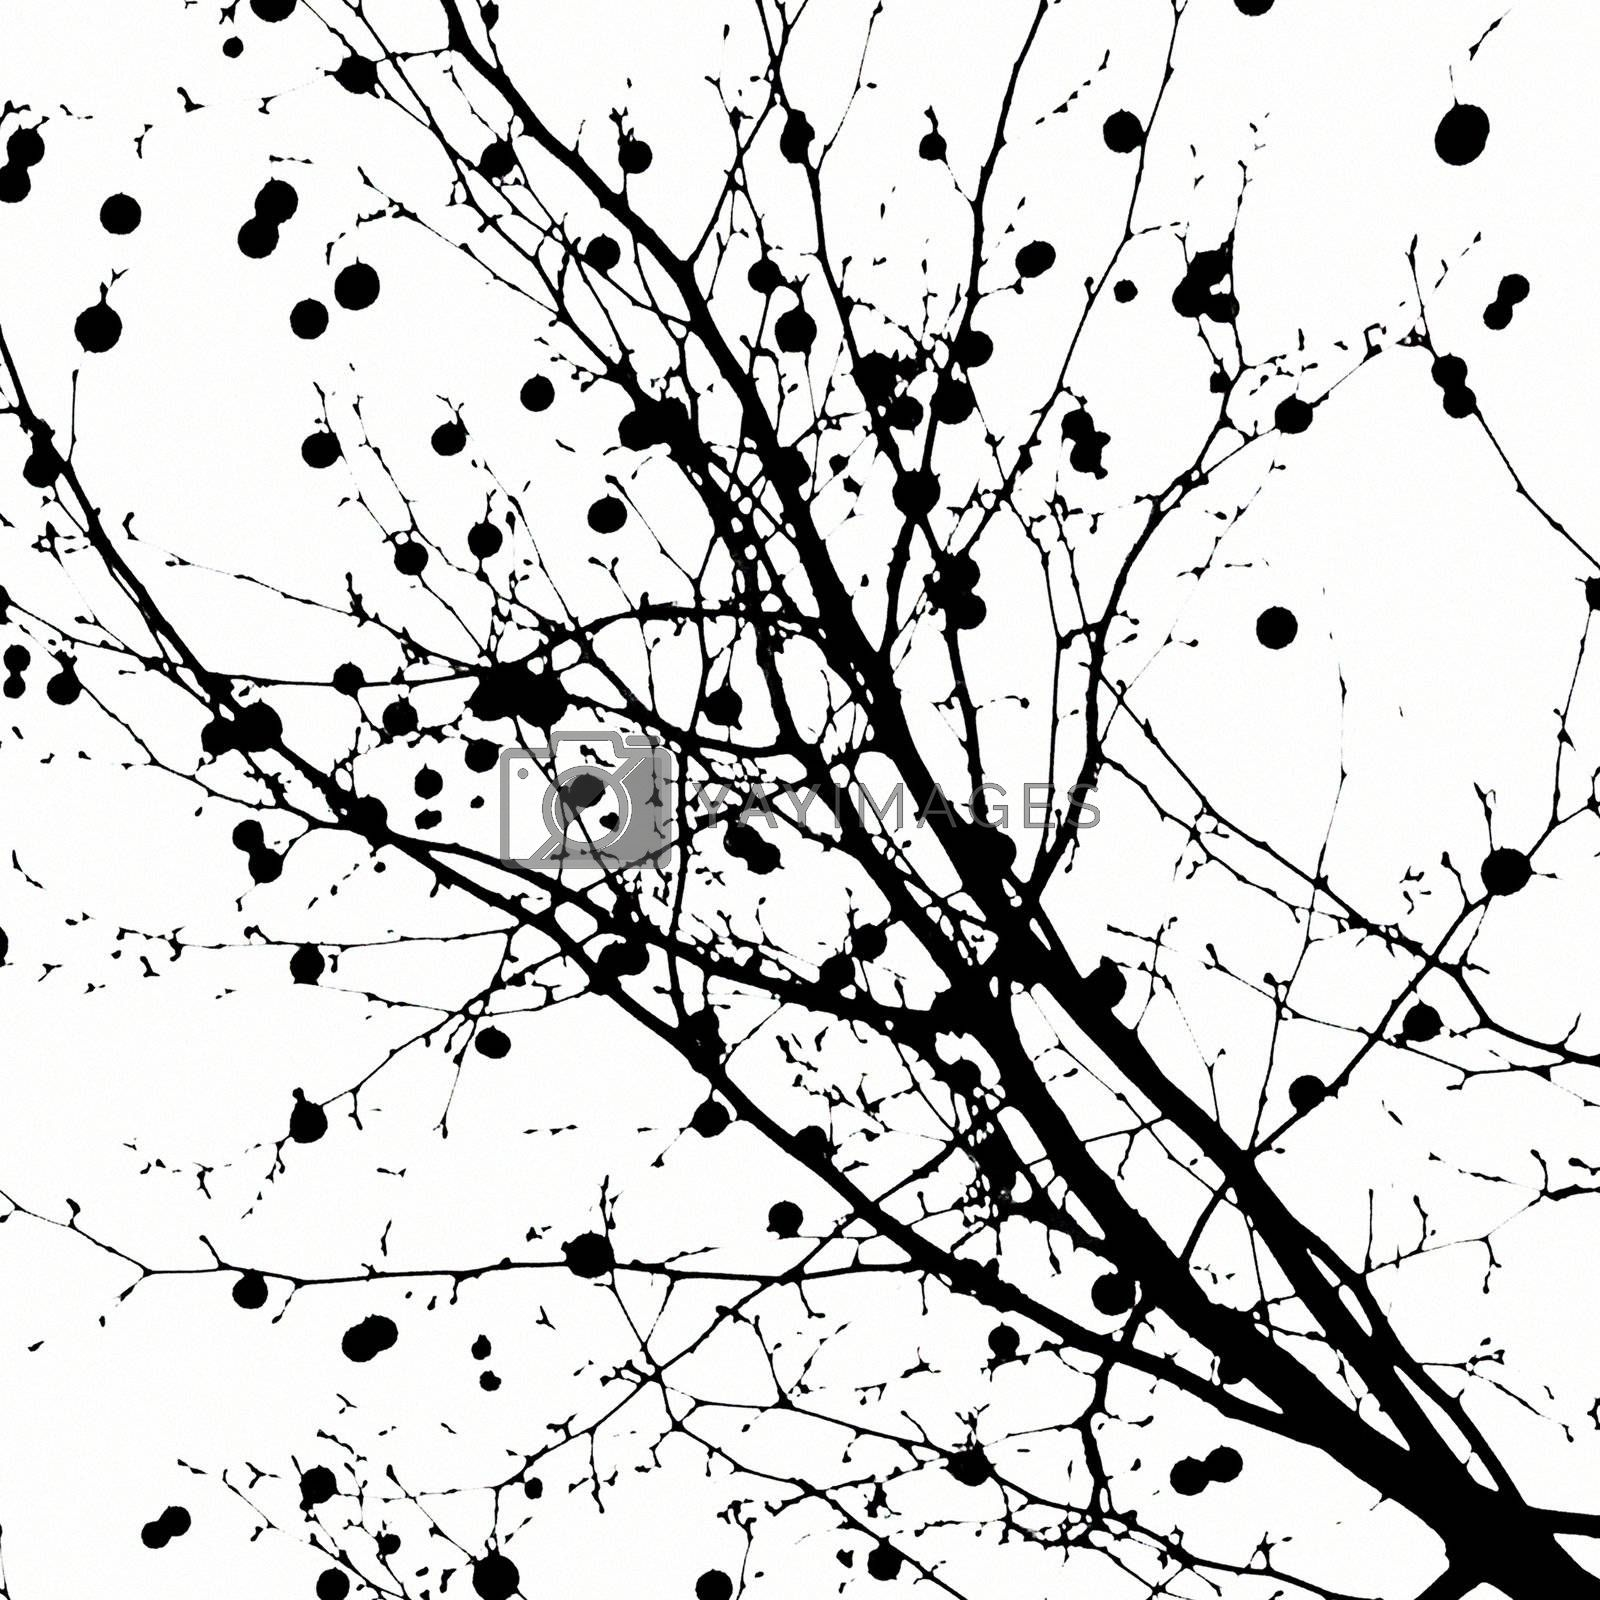 Silhouette of abstract ancient trees